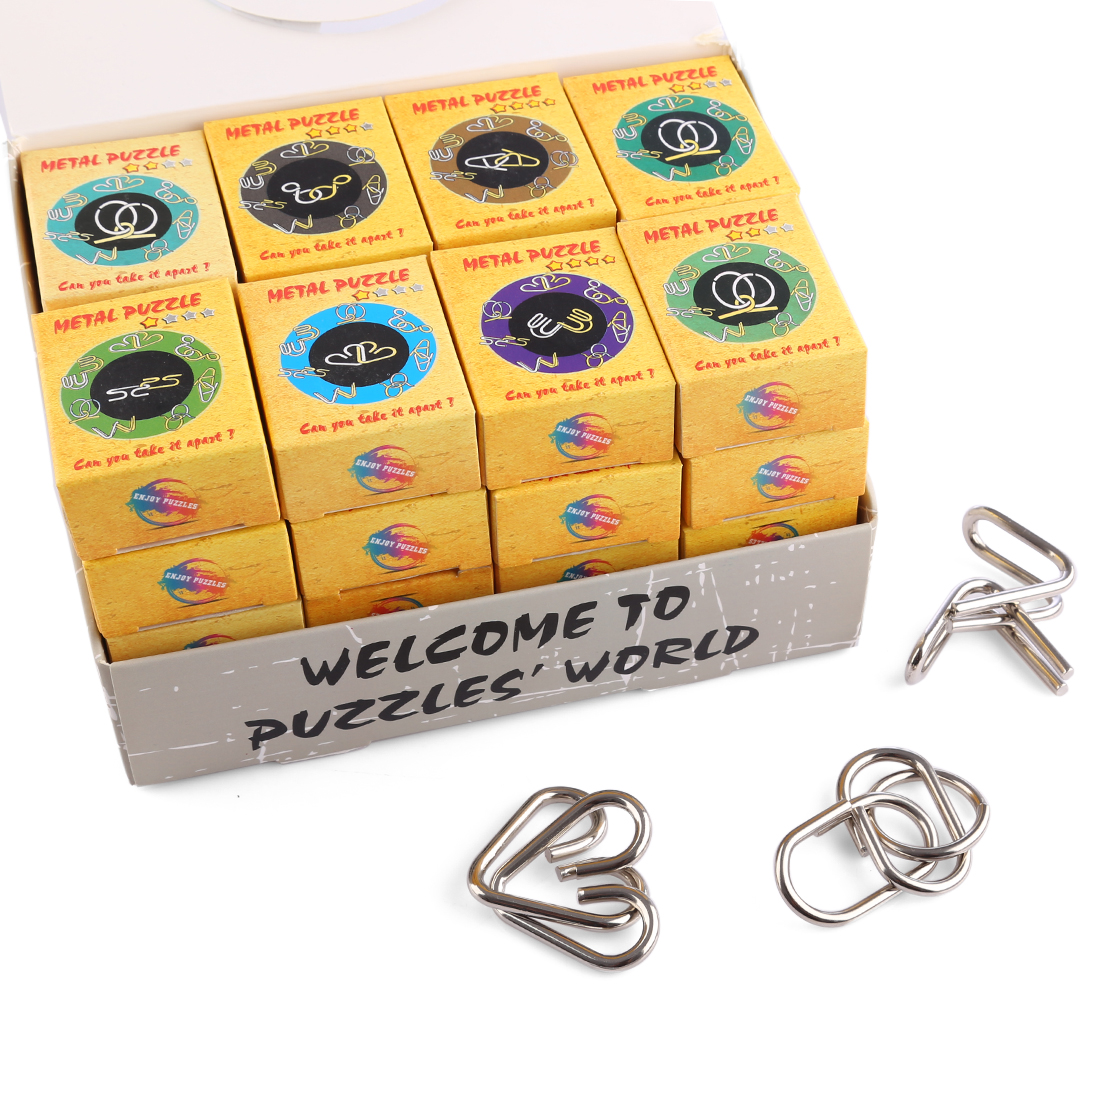 32Pcs Classic Intelligent Montessori Metal Wire Puzzle Baffling Brain Teaser Magic Rings Game Toys For Adult Children Kids Gifts